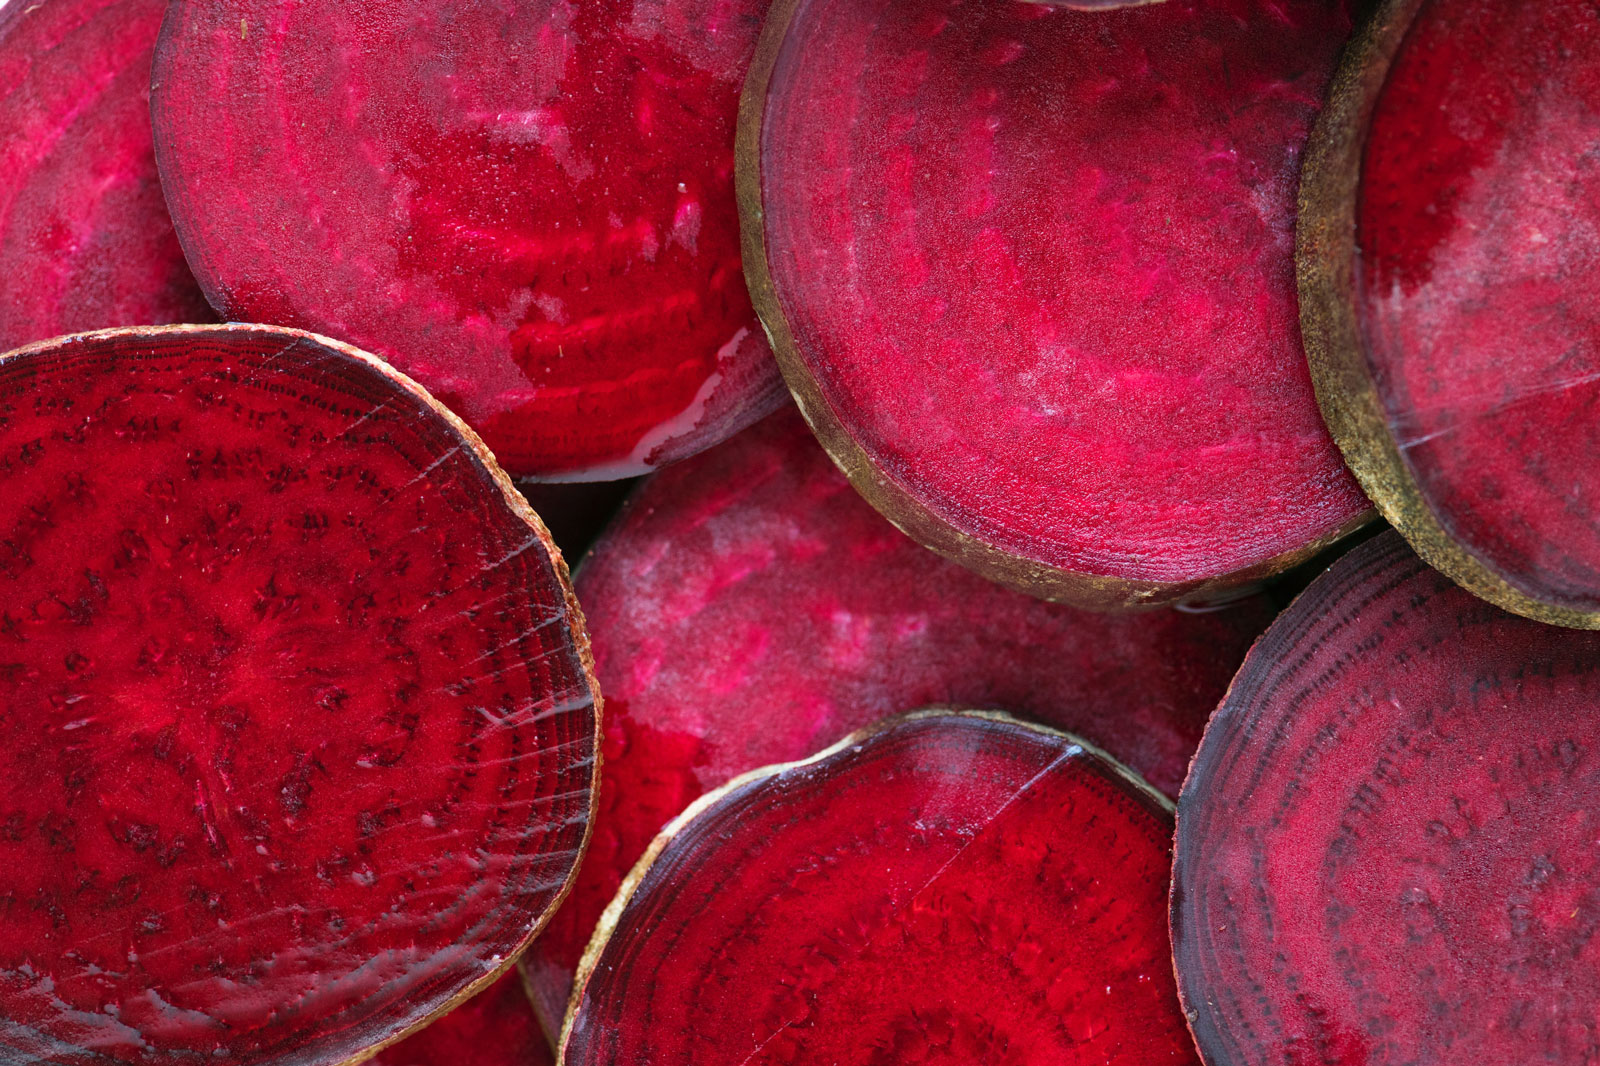 Beets | The Best Fruits and Vegetables for Juicing With 3 Ingredients